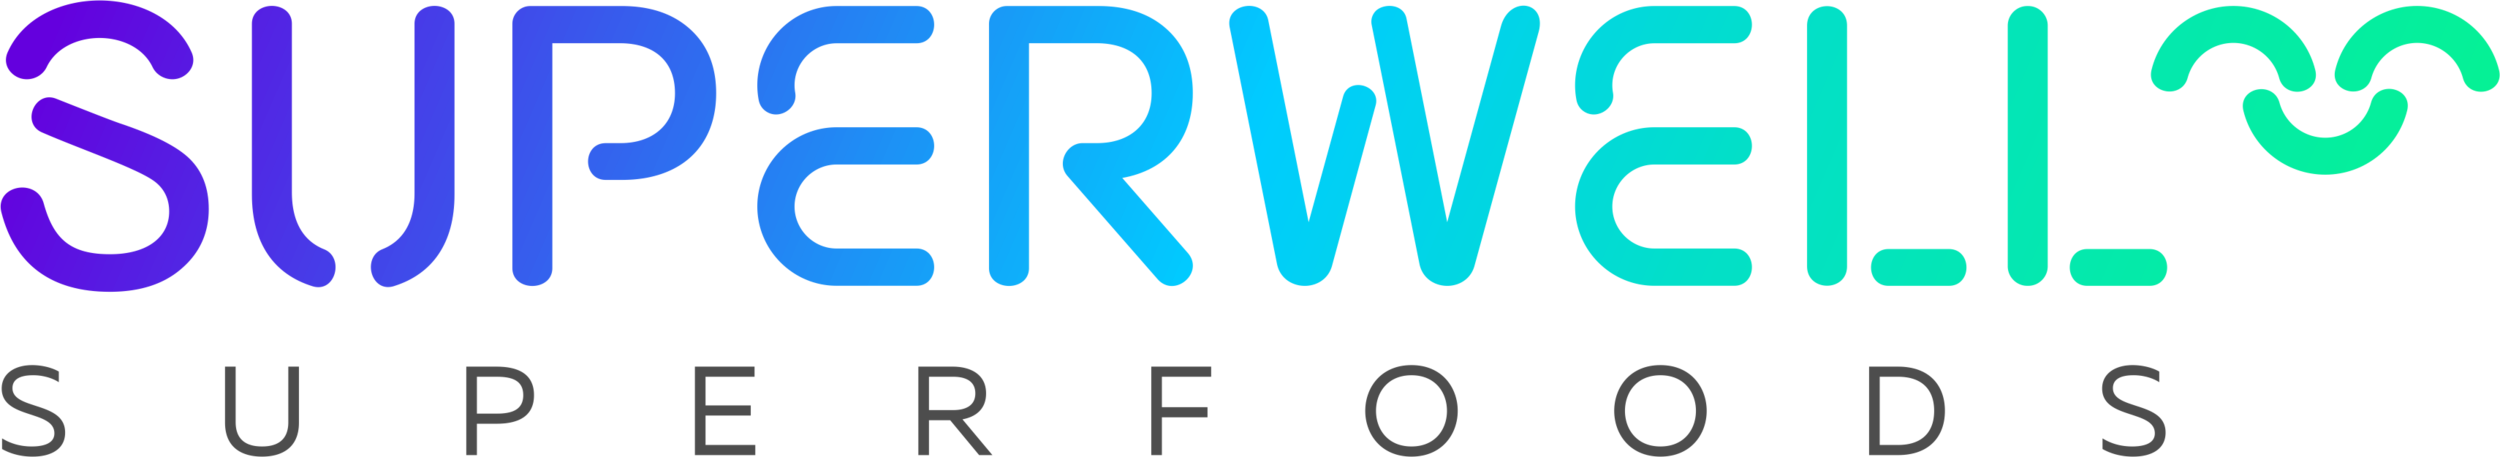 superwell_full-logo_color.png